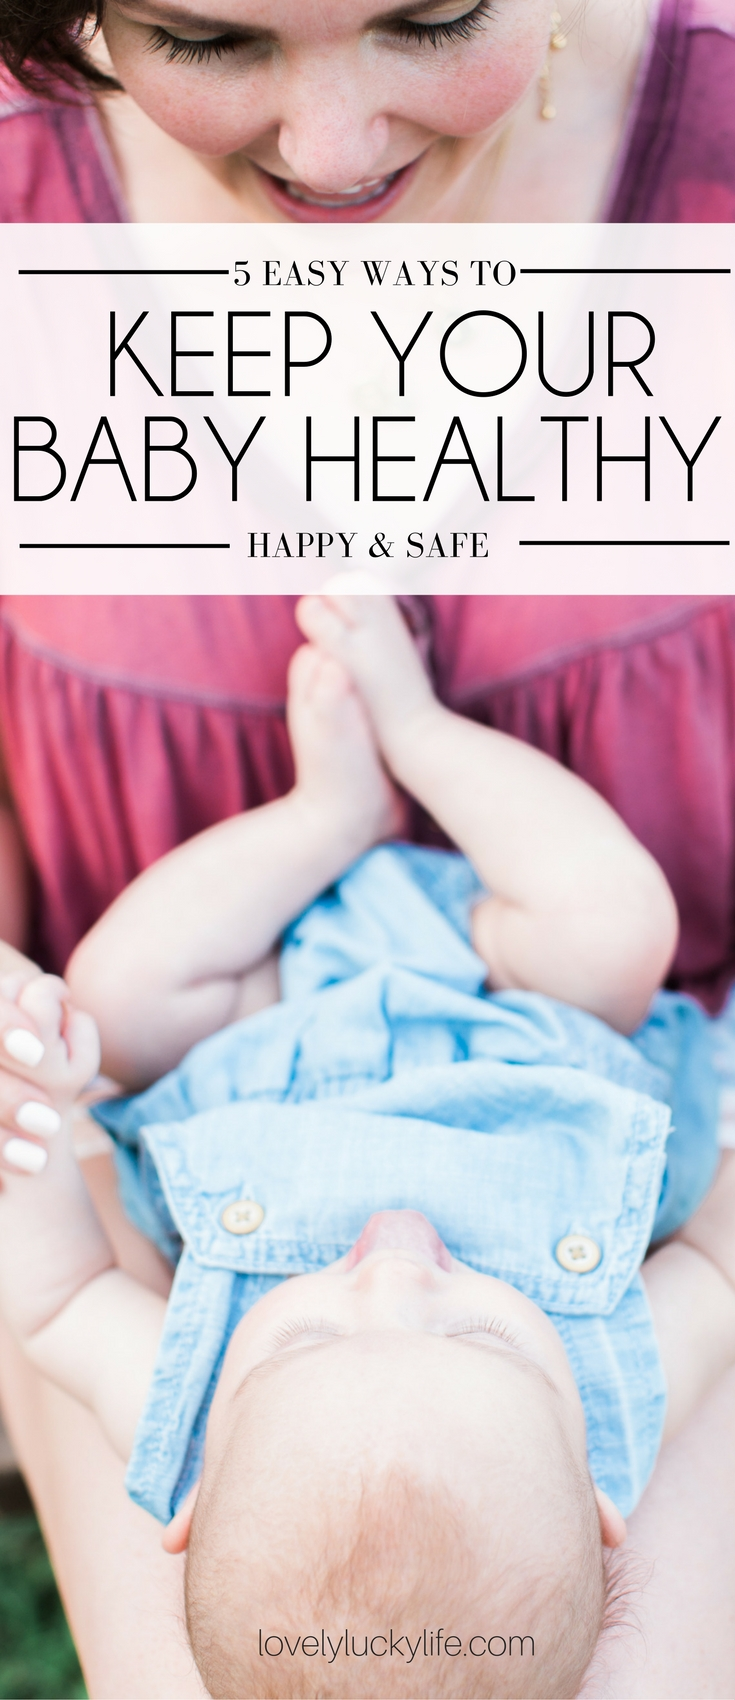 5 easy ways to keep your baby healthy and happy - a must-read for moms-to-be or moms of new babes